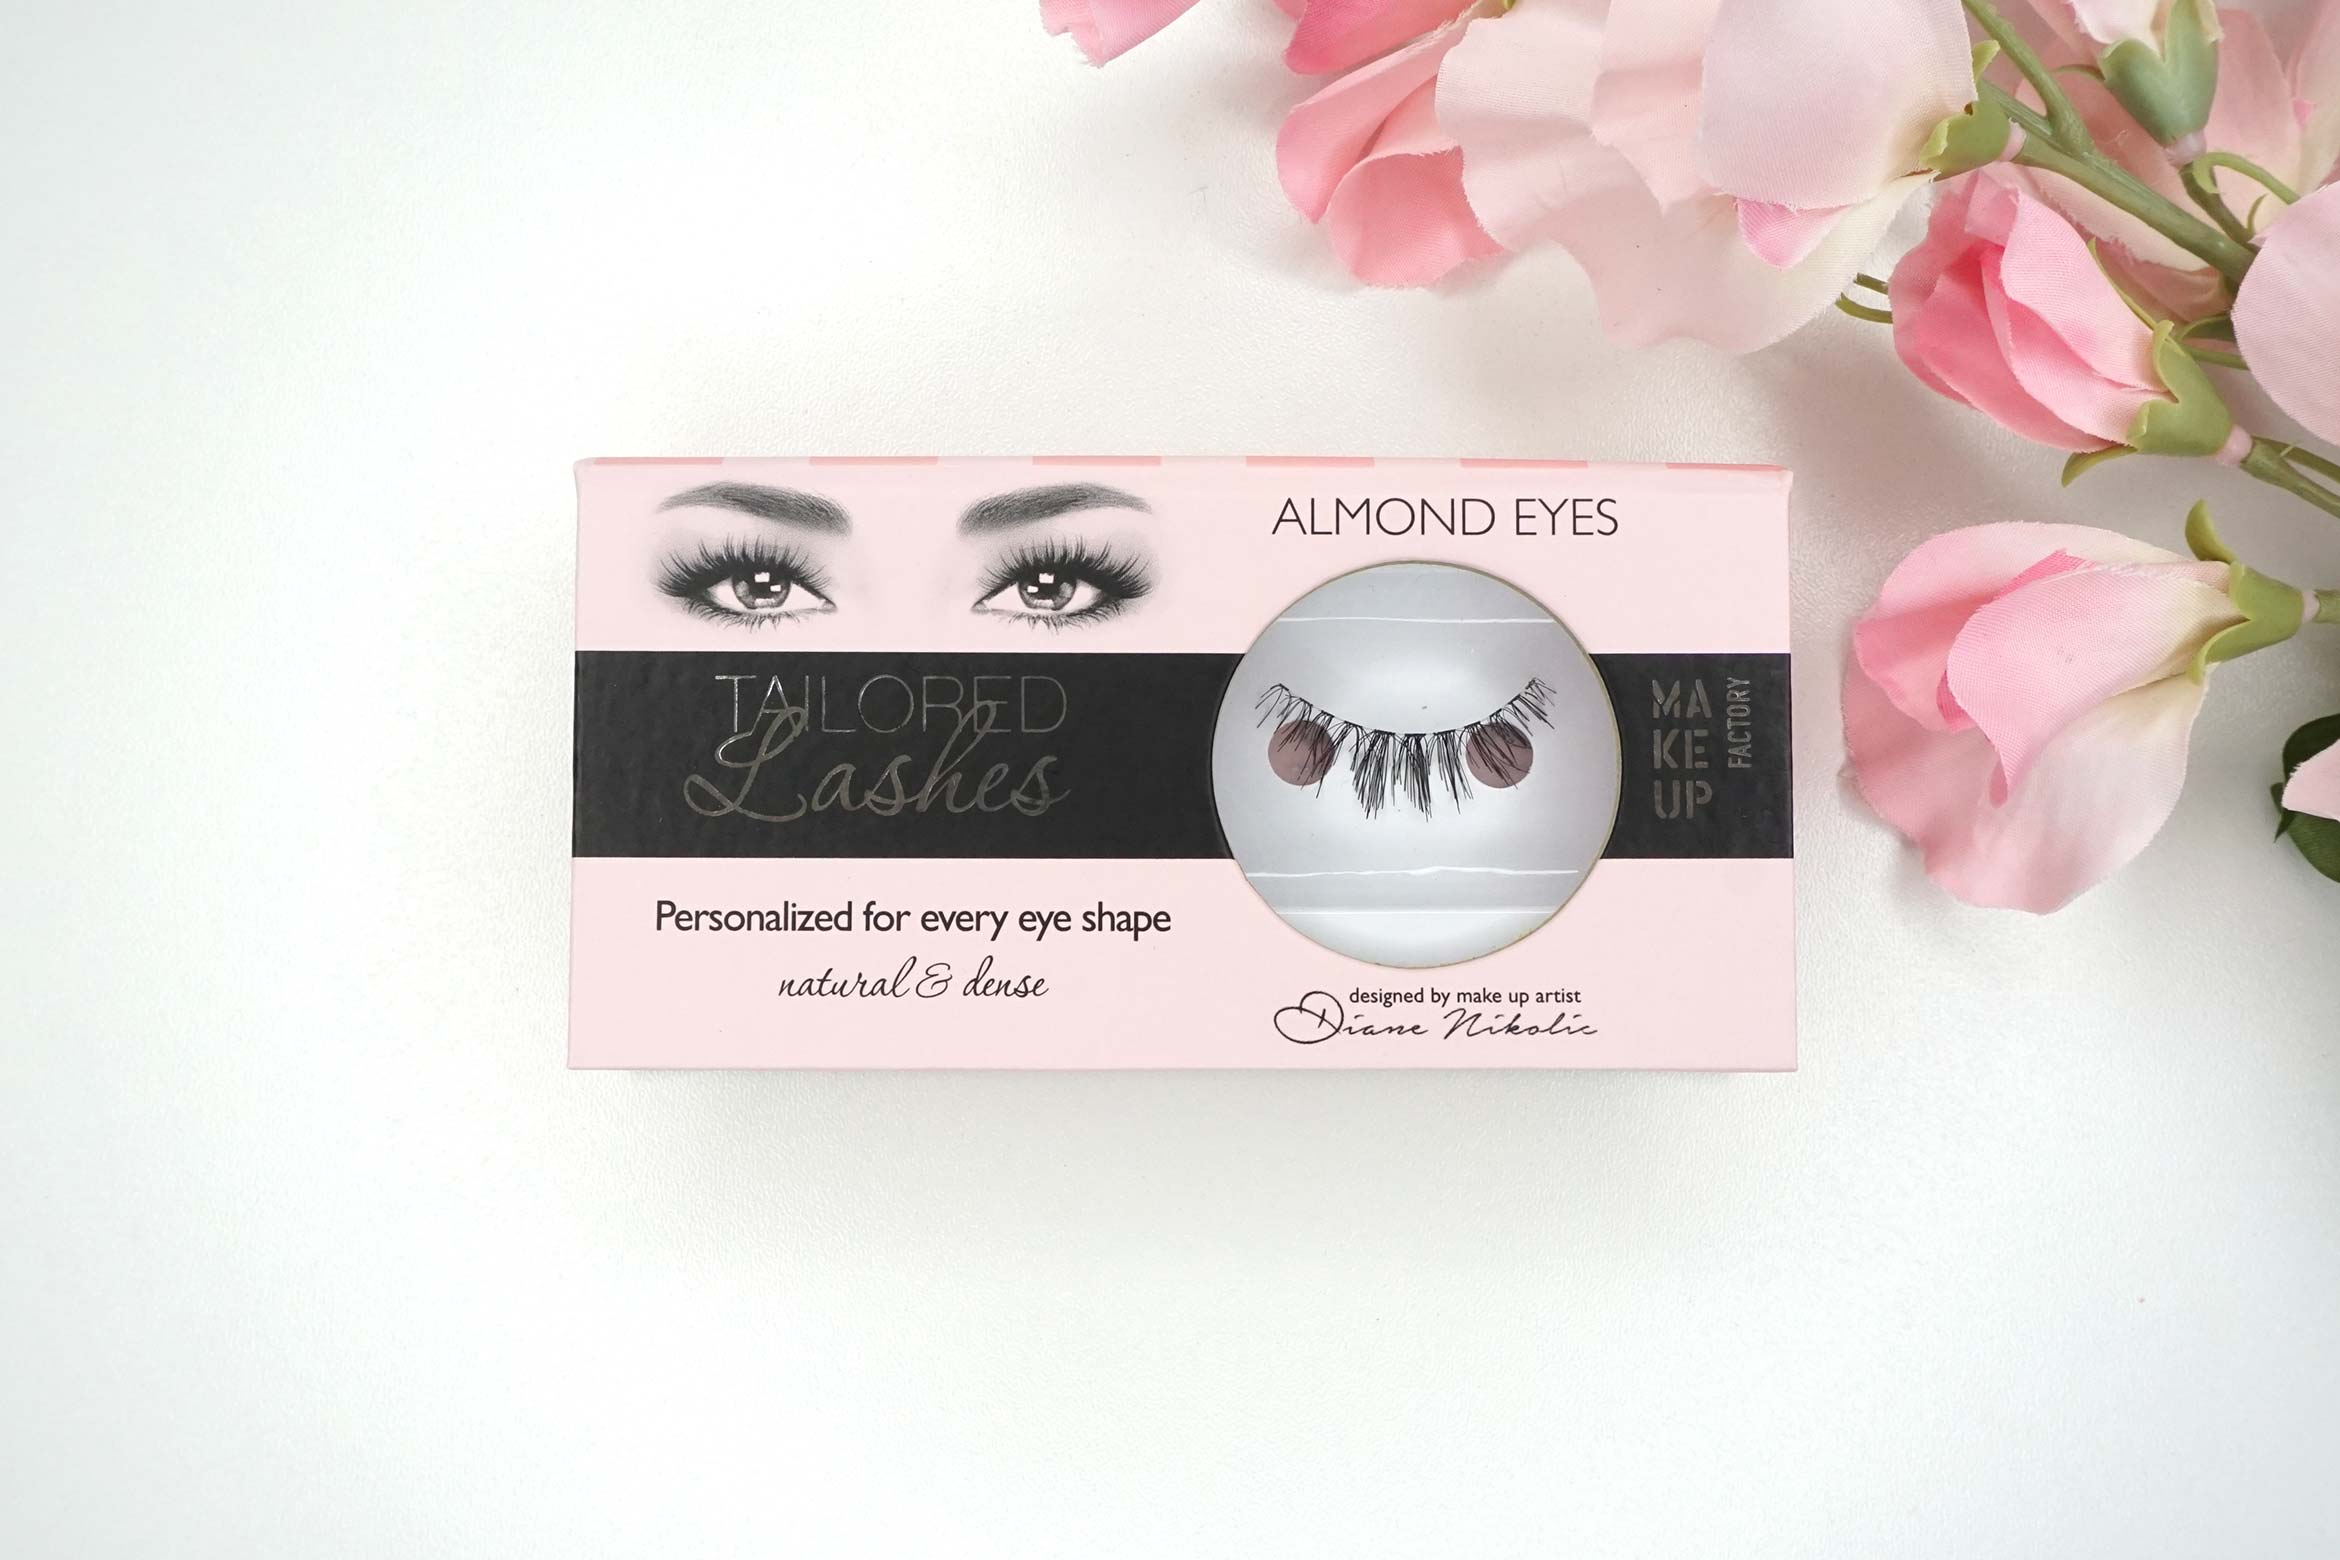 make-up-factory-tailored-lashes-review-almond-eyes